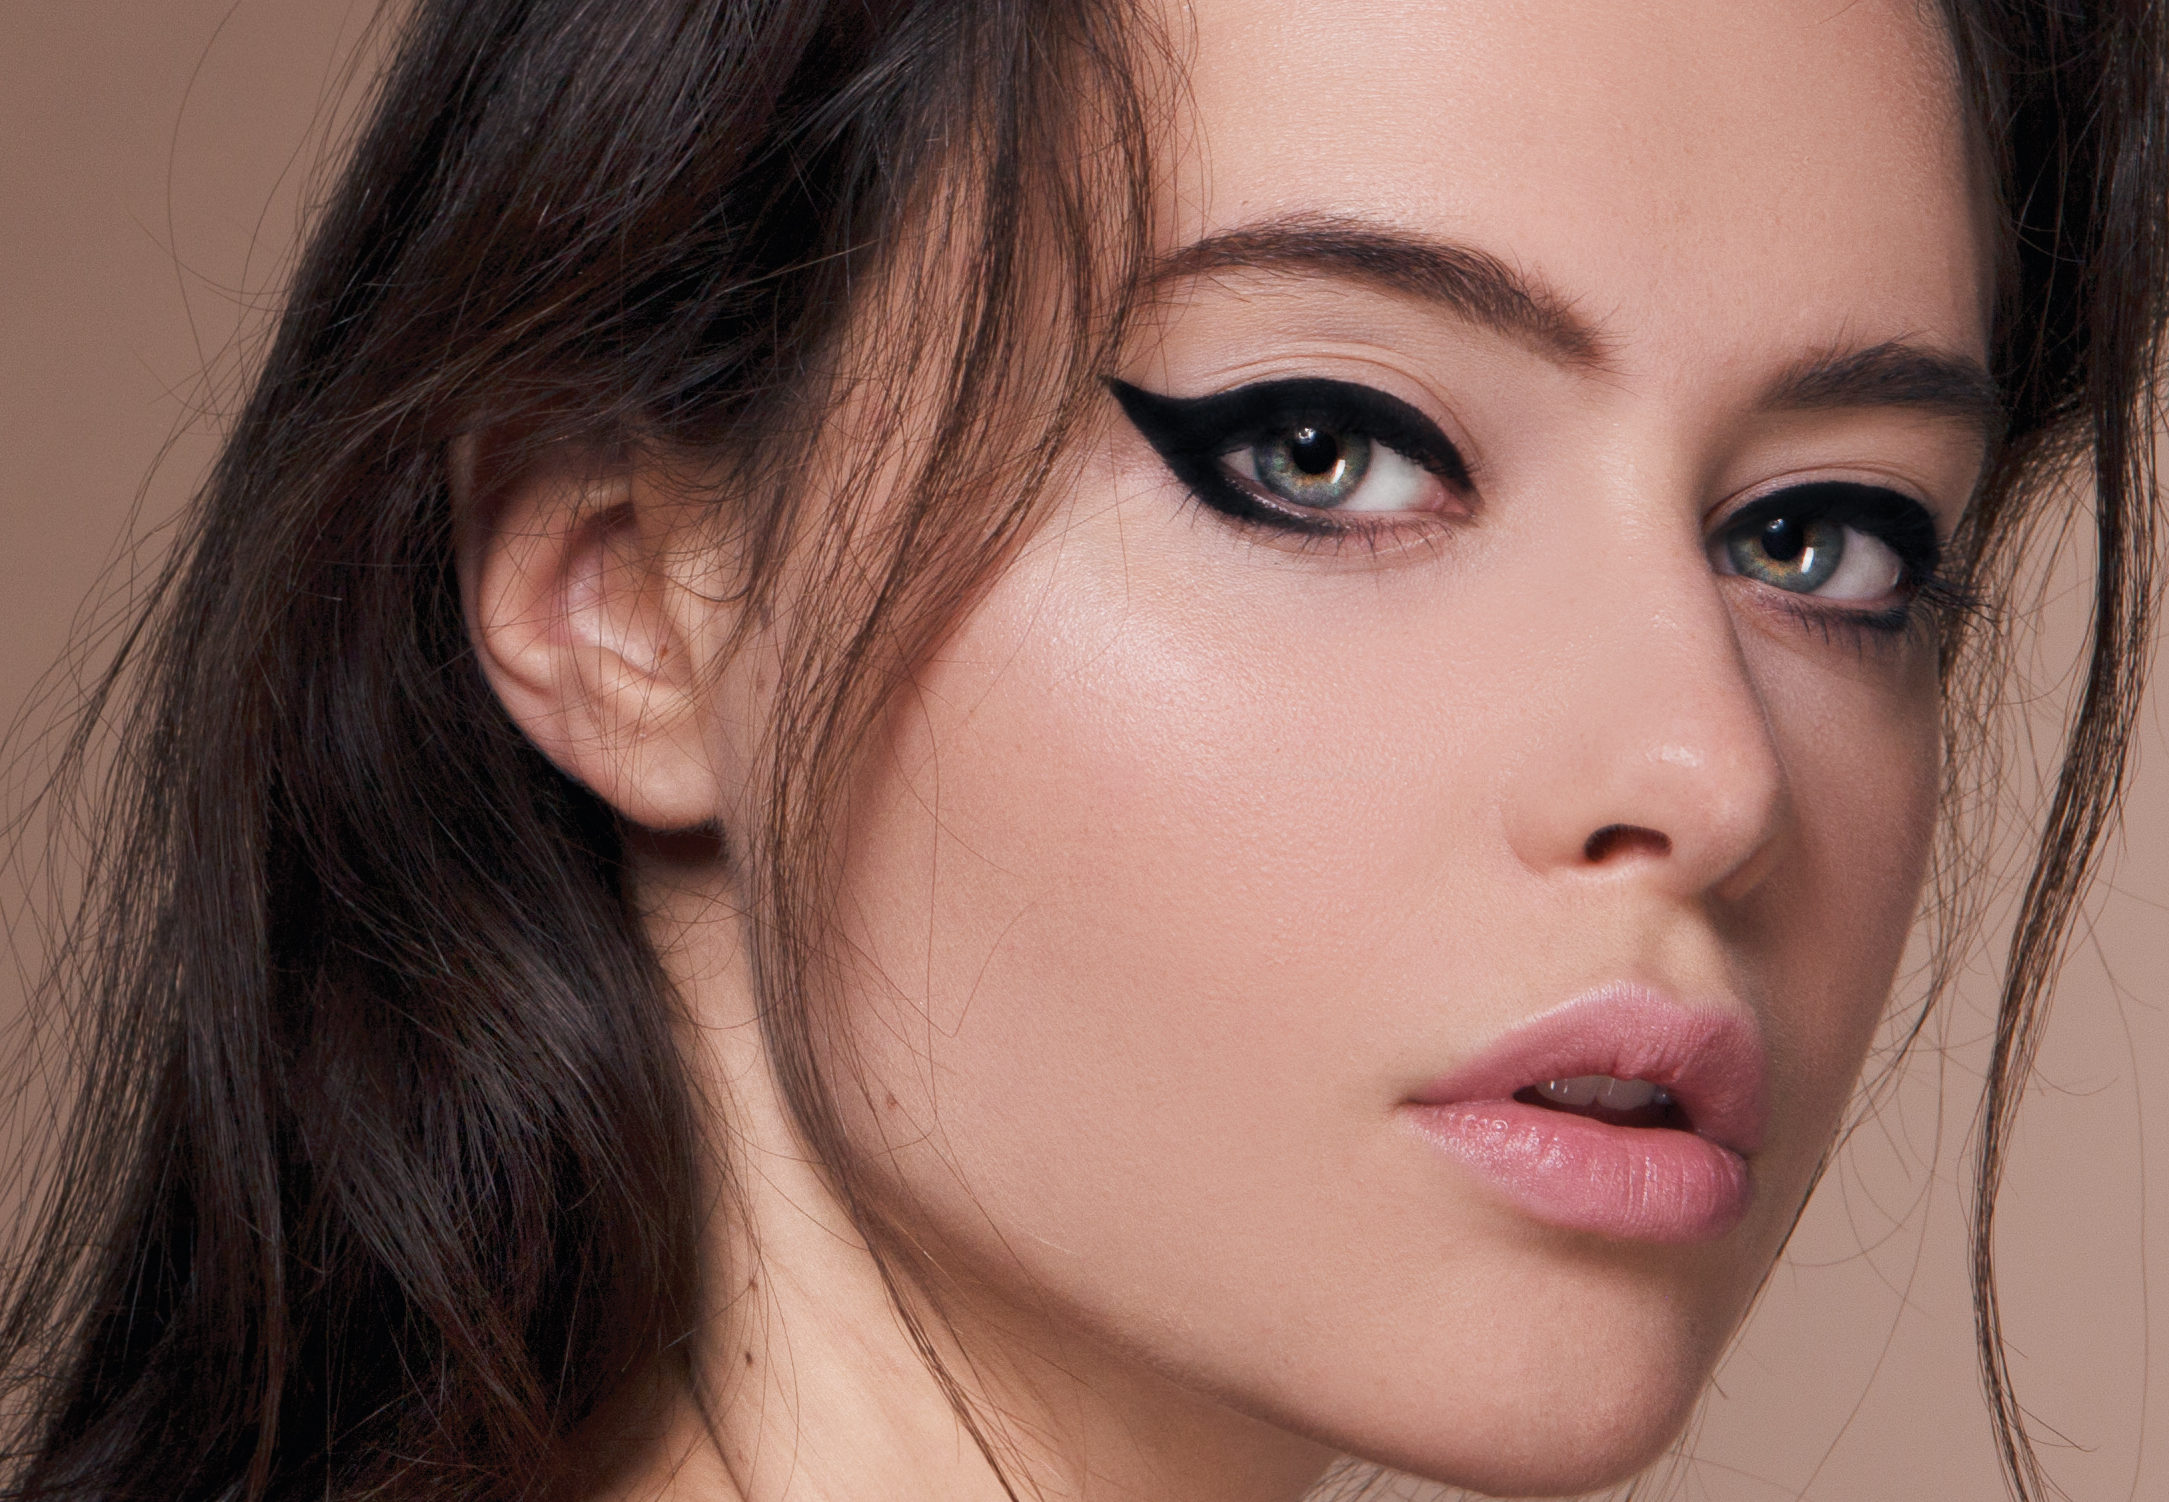 The iconic eyeliner flick is ideal for framing your eyes